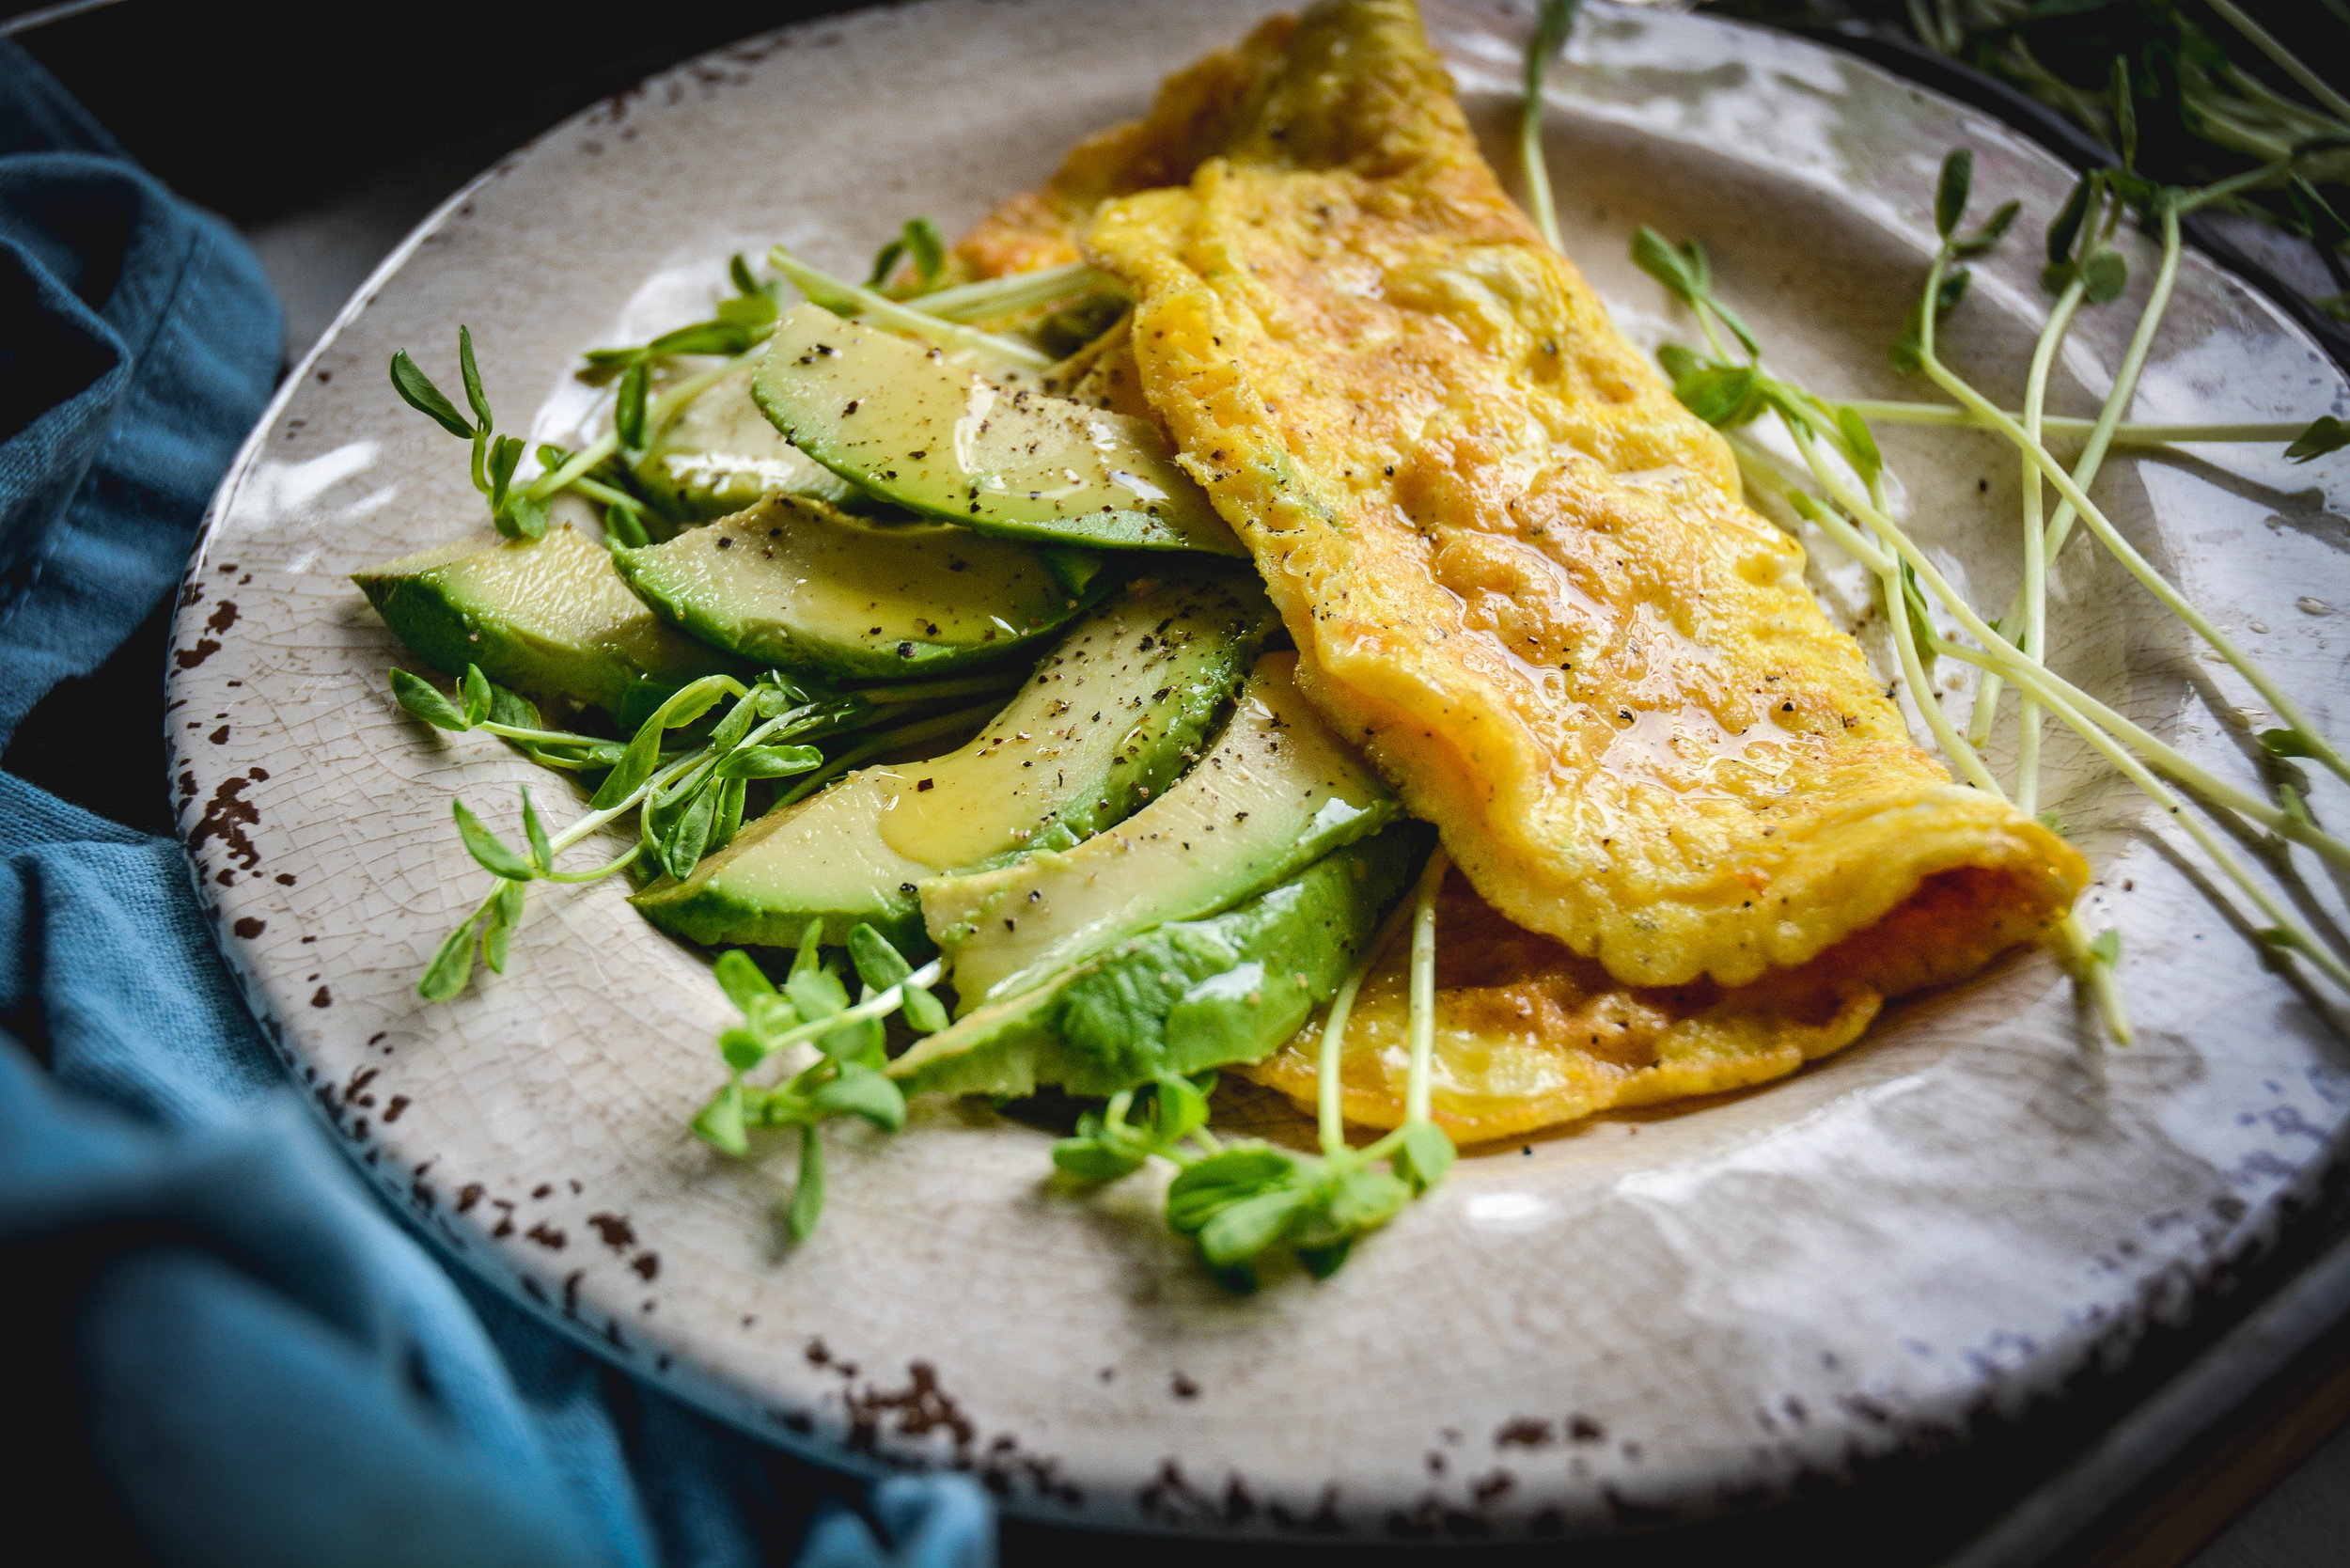 omelette with greens and avocado slices on plate